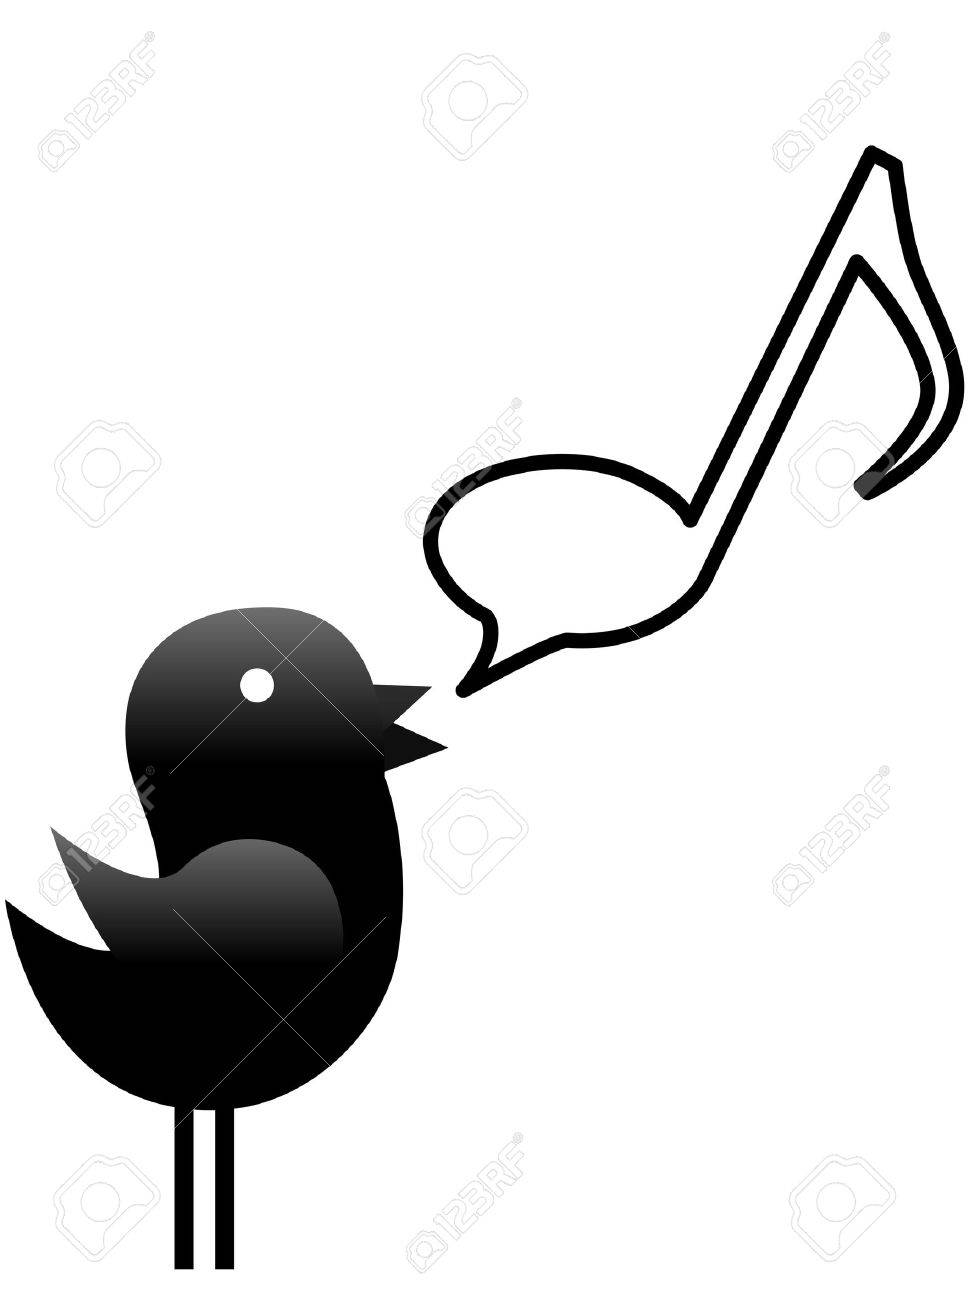 a tweety bird sings or talks music in a musical note speech bubble rh 123rf com Music Notes Graphics Music Note Icon